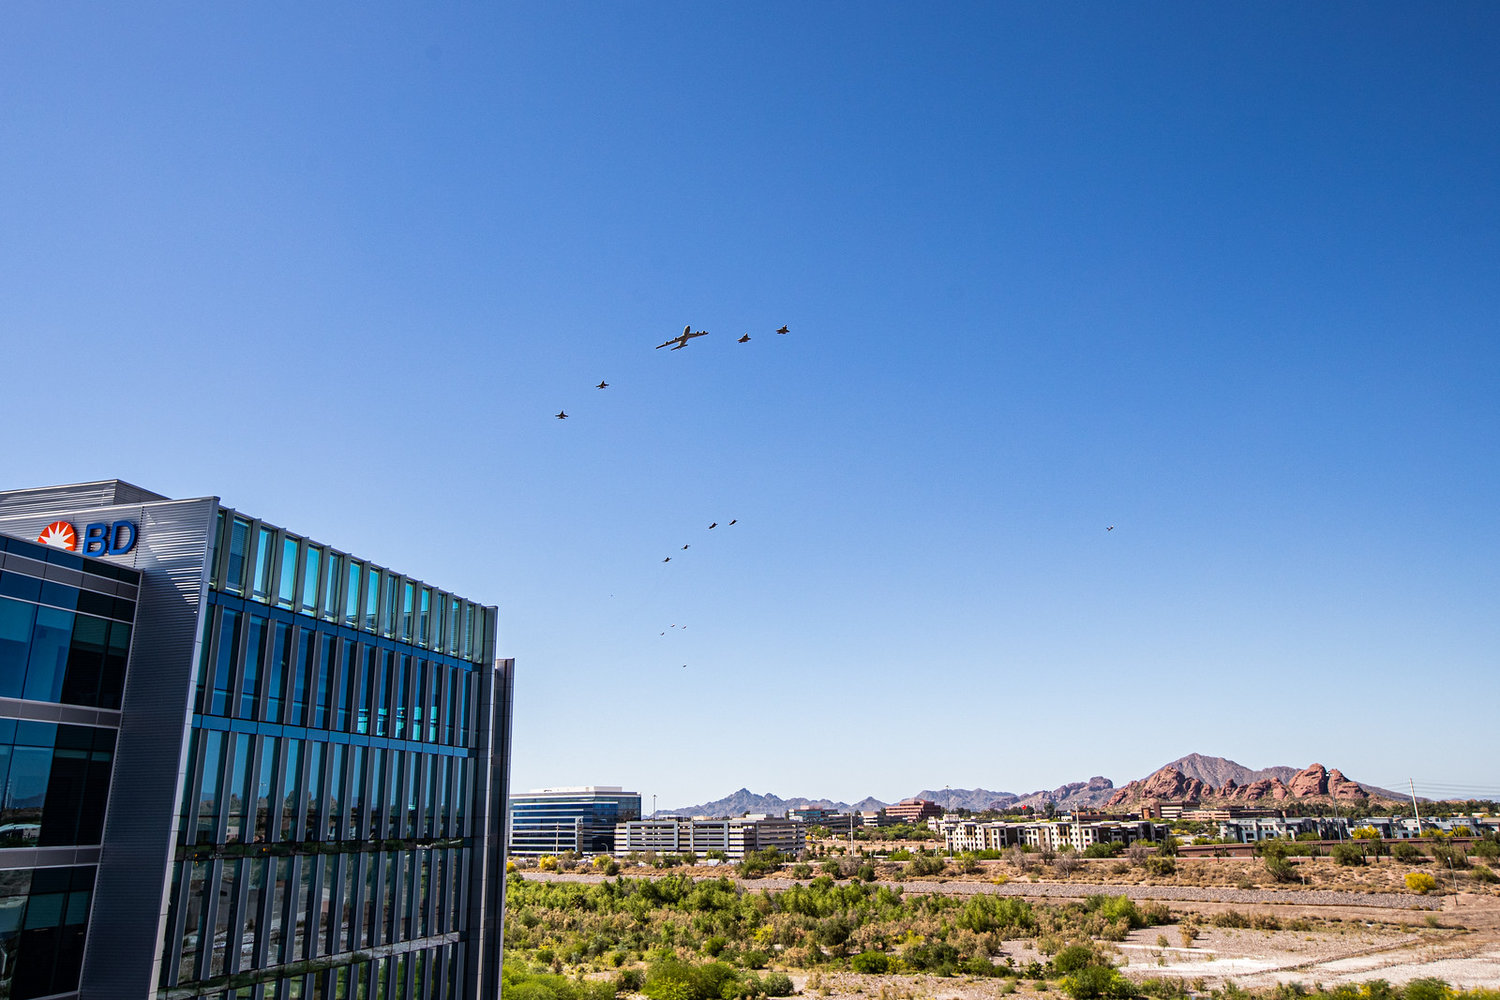 Aircraft from Luke Air Force Base conducted a flyover across the Valley of the Sun on May 1.